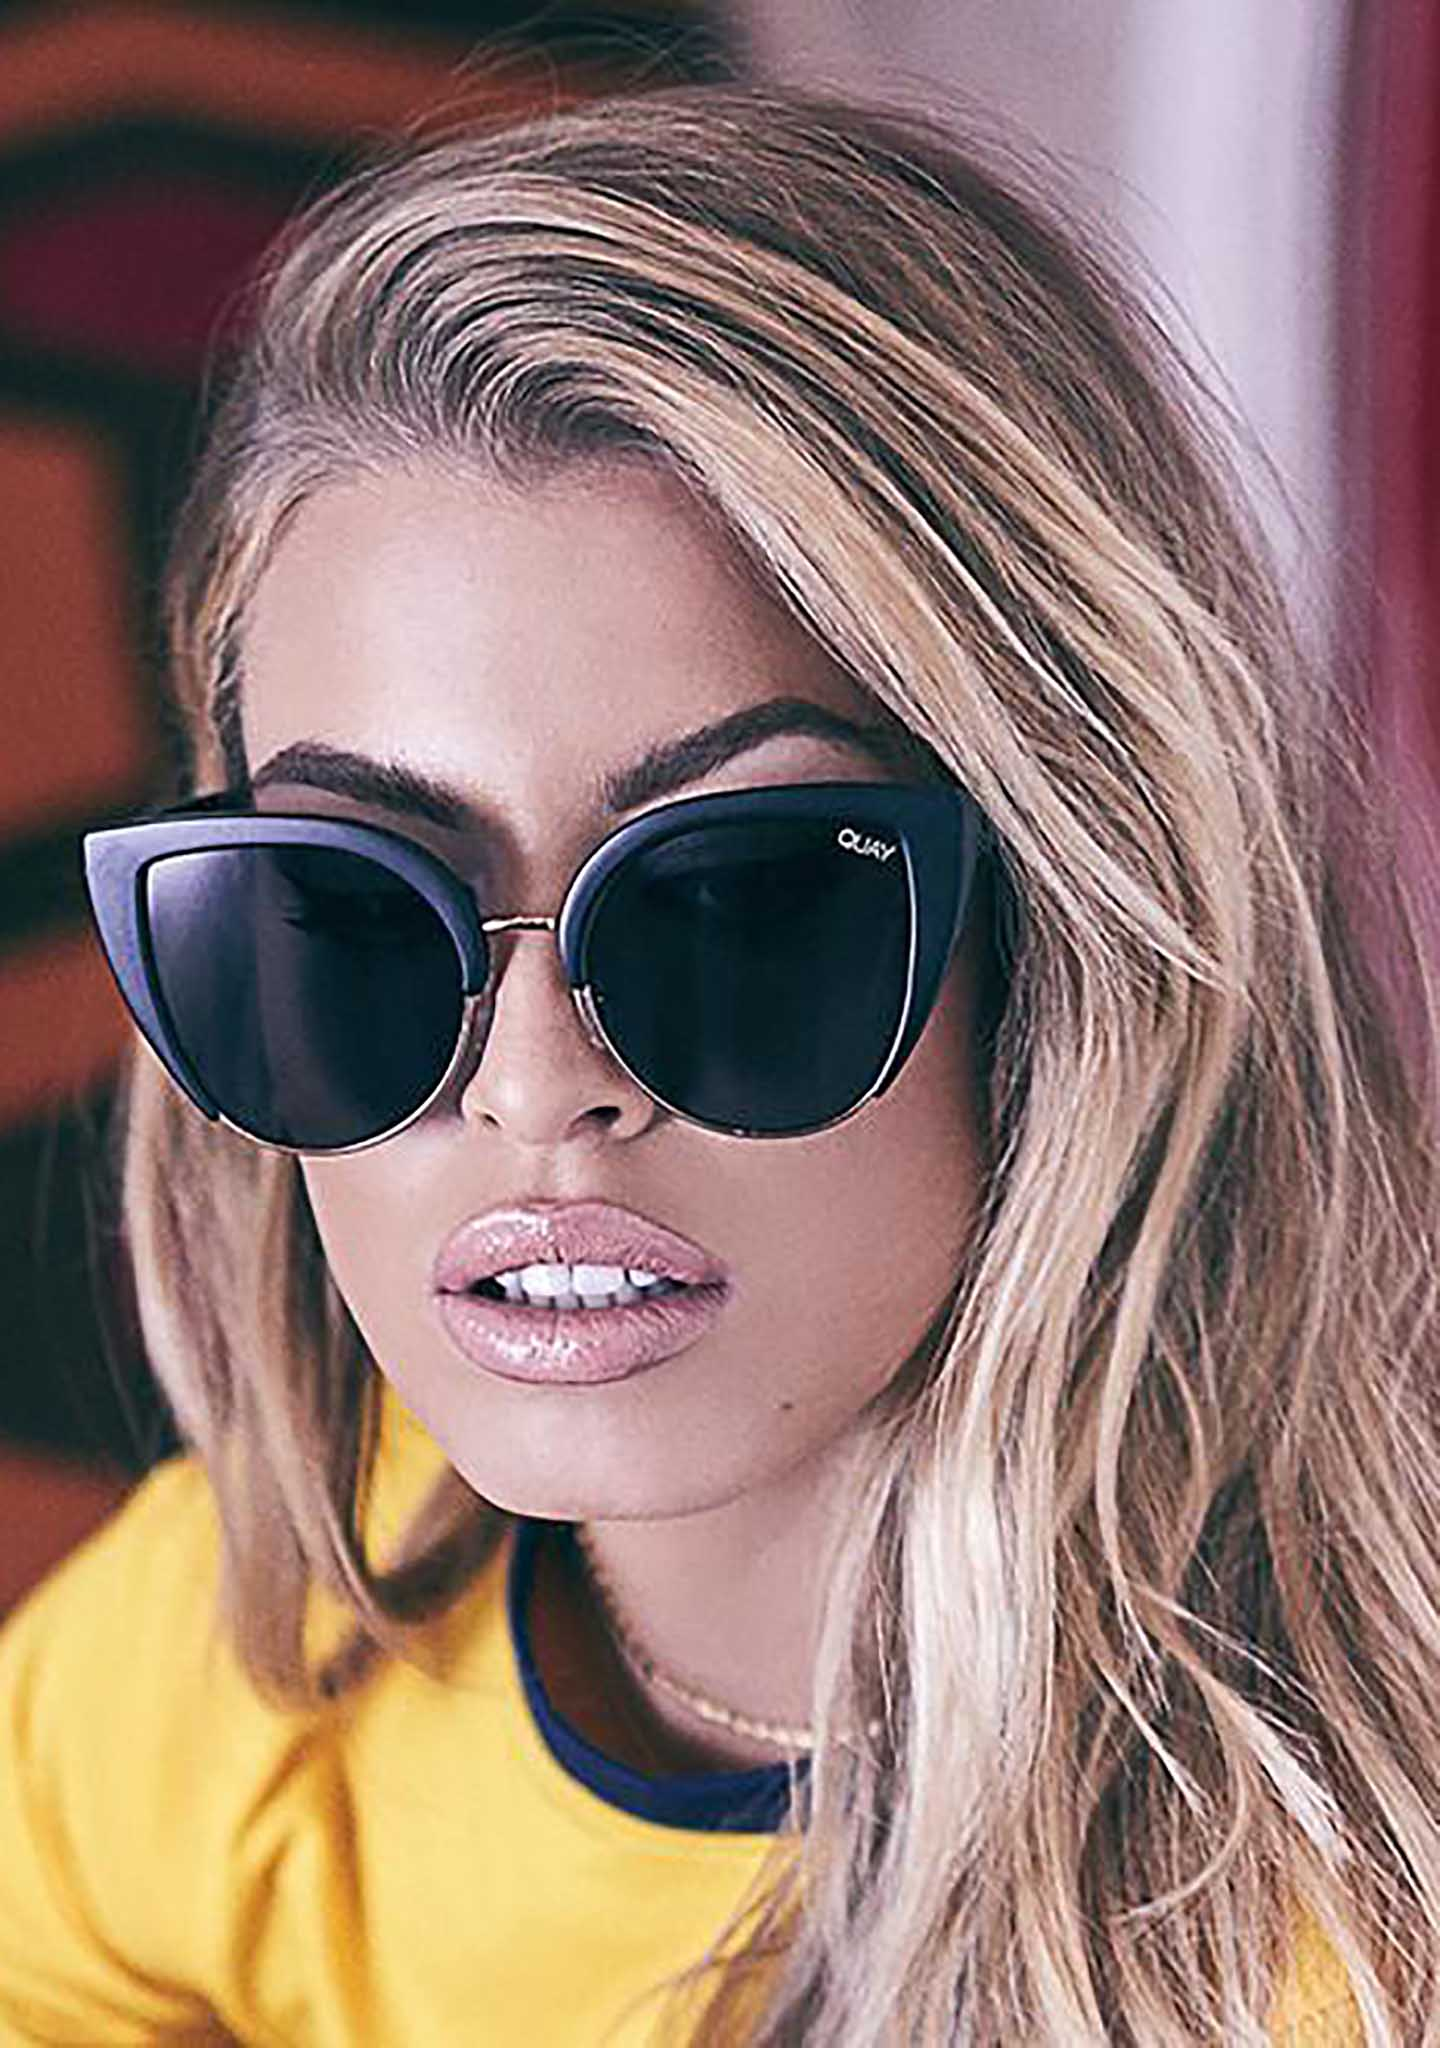 8d7aa51ead6 X Missguided Oh My Dayz Sunglasses in Black Smoke